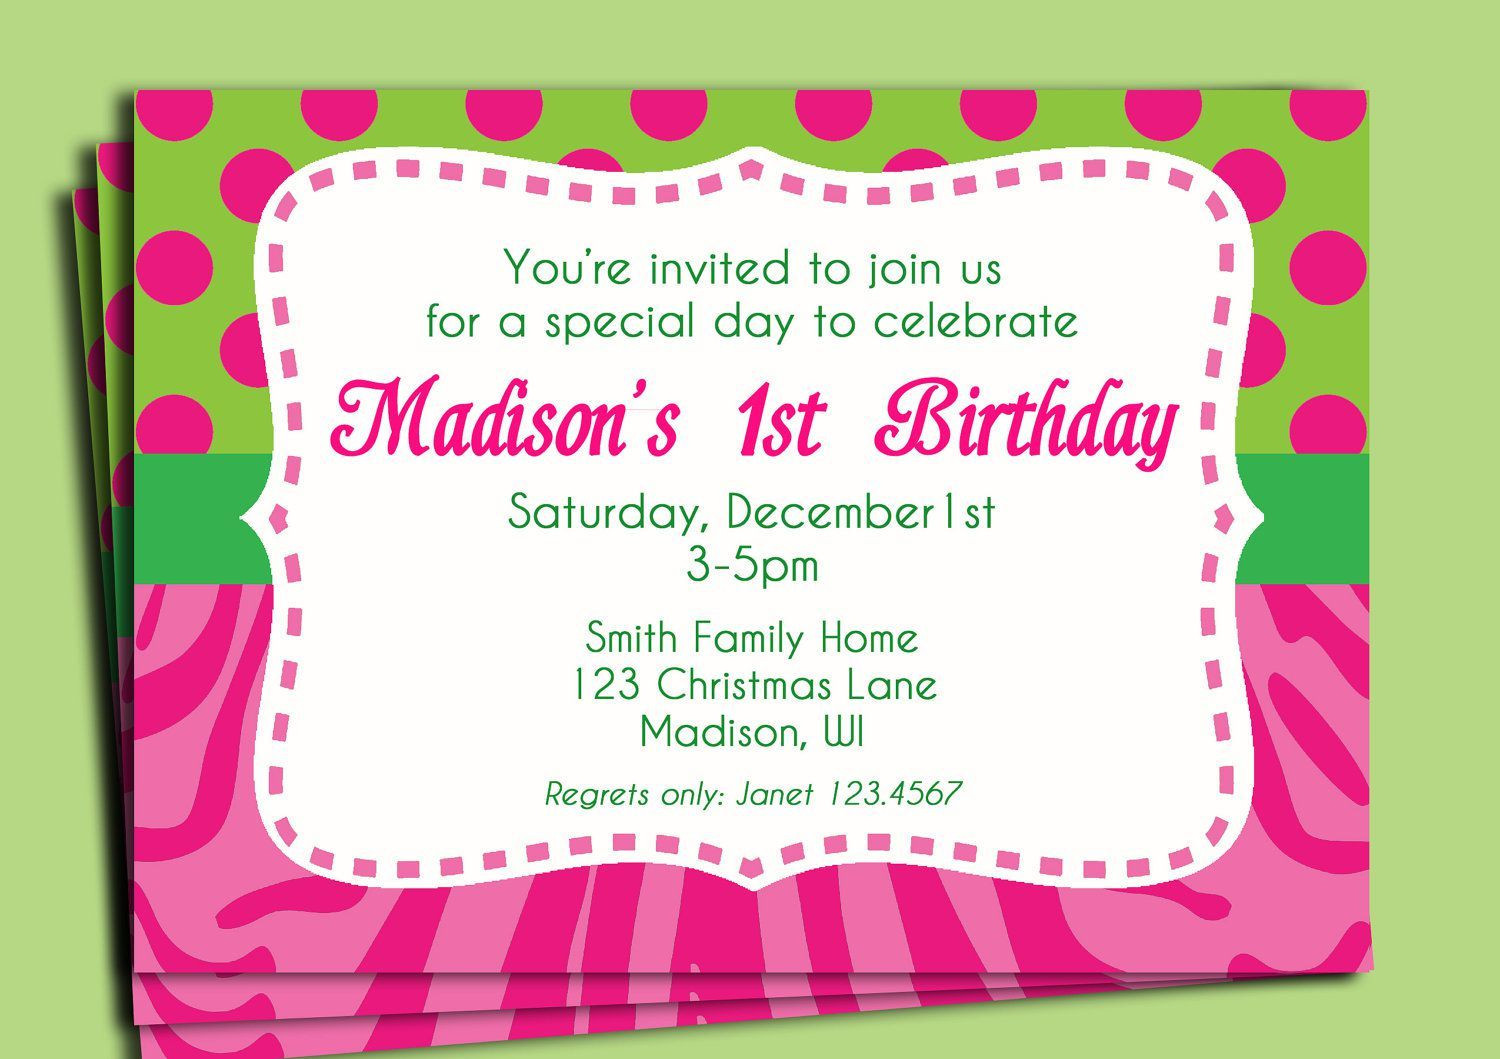 Best ideas about Birthday Party Invitation Message . Save or Pin birthday invitation wording for 11 year old Now.